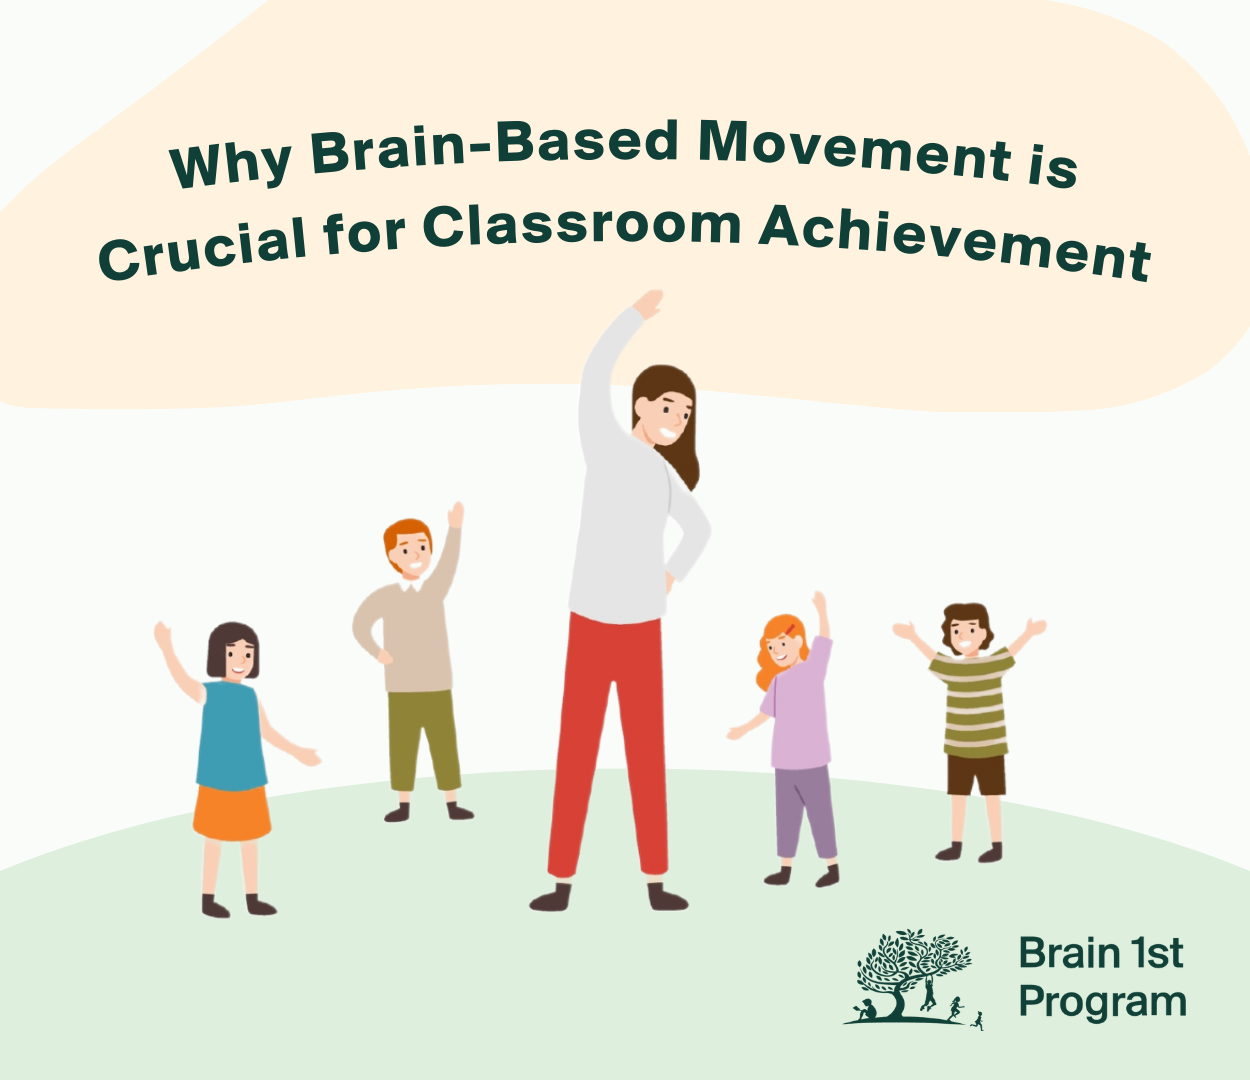 Why Brain-Based Movement is Crucial for Classroom Achievement